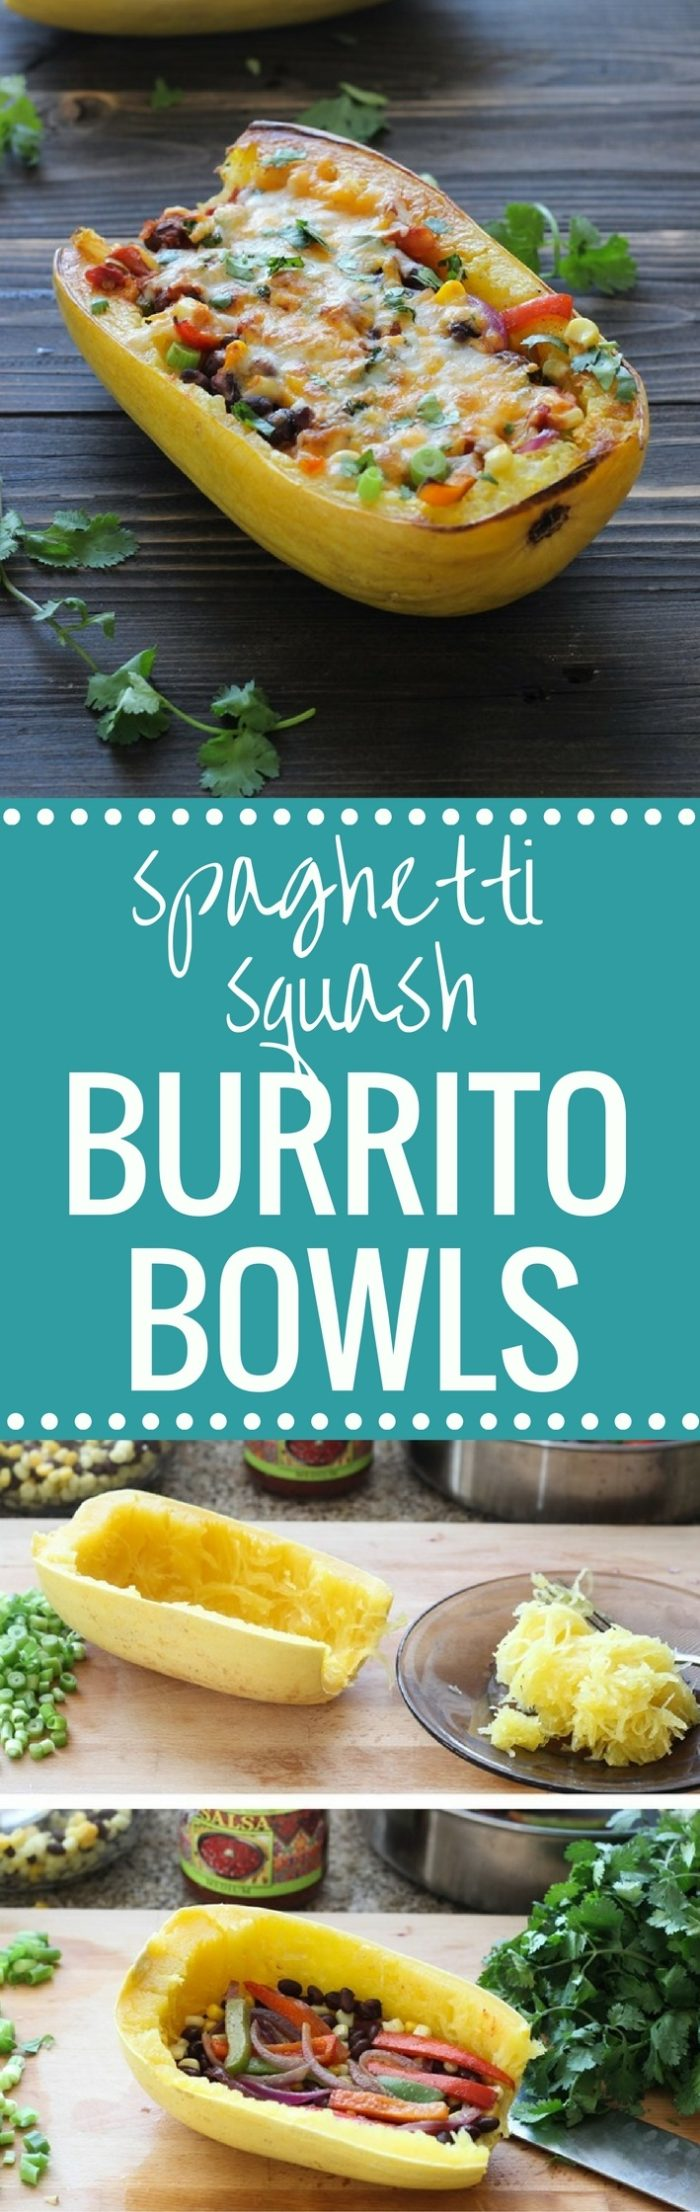 Spaghetti Squash Burrito Bowls- stuffed with veggies, salsa and beans then topped with broiled cheese. They make for a healthy and super delicious vegetarian meal!